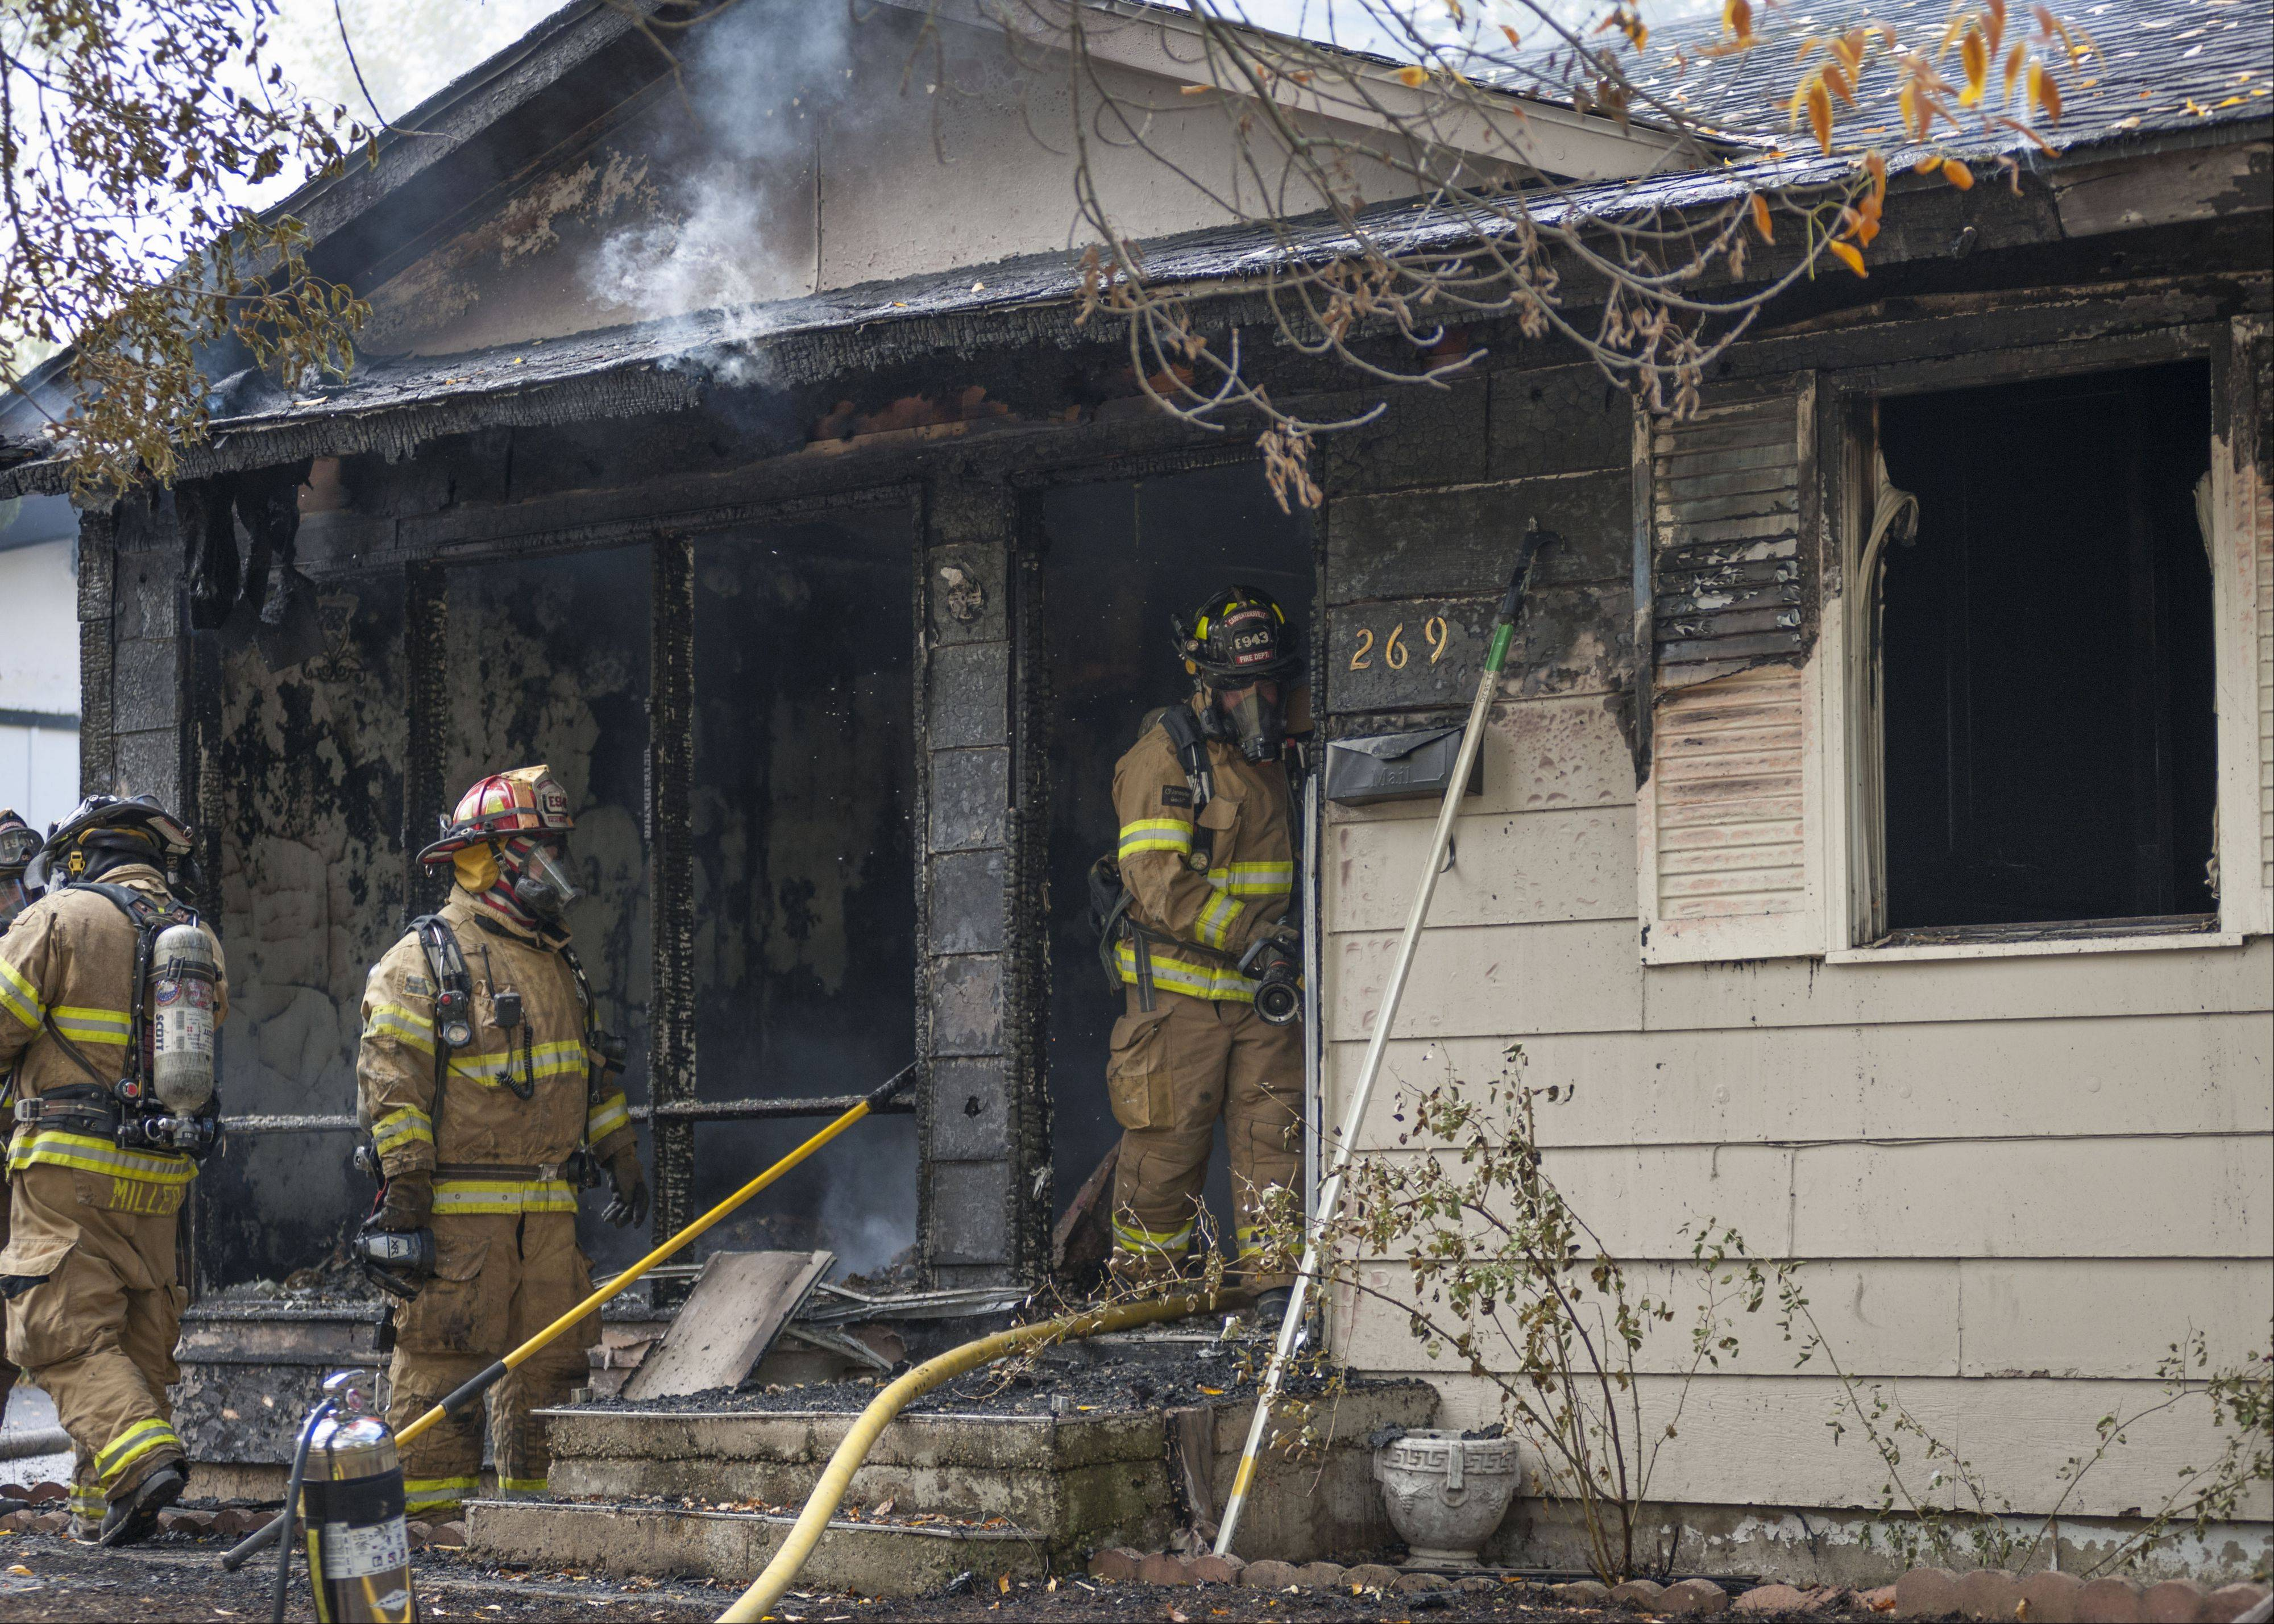 Fire destroyed a home Thursday morning on the 200 block of Riverview Drive in Carpentersville.